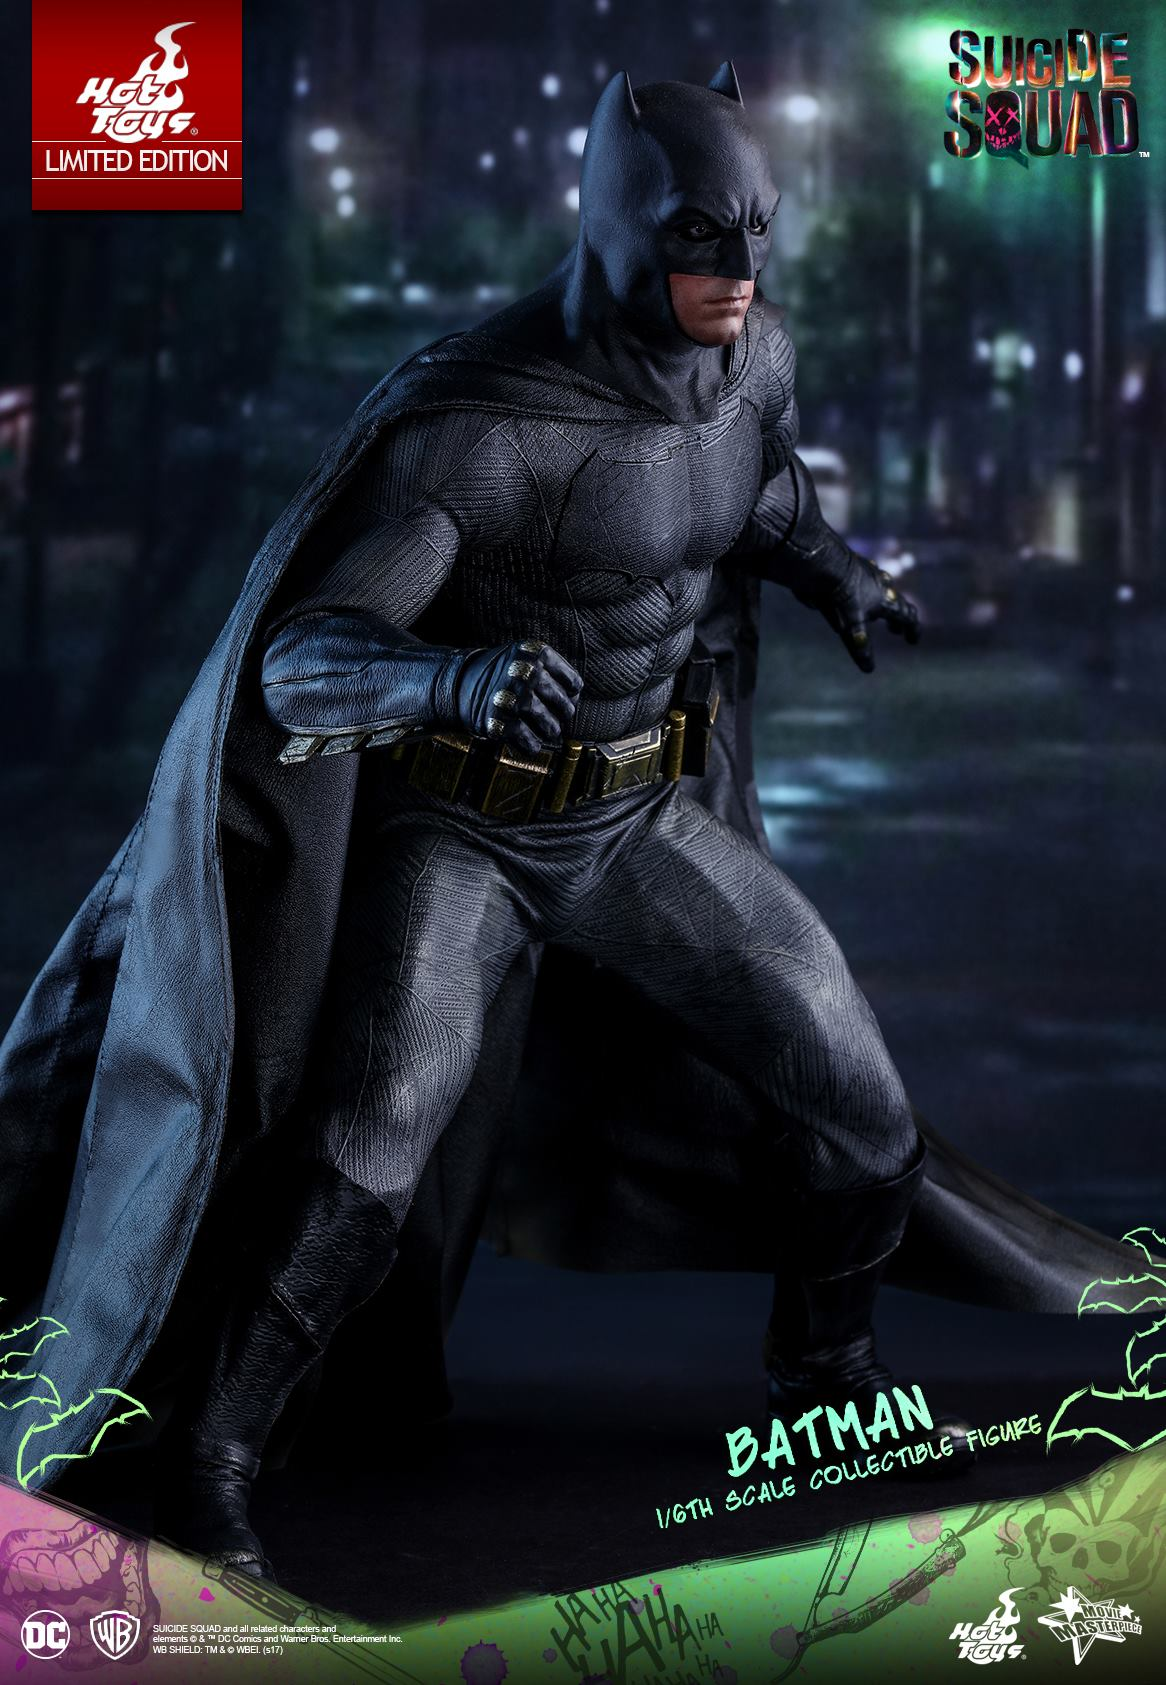 hot toys suicide squad 1 6th scale batman collectible figure mms409 ultimate toys singapore. Black Bedroom Furniture Sets. Home Design Ideas